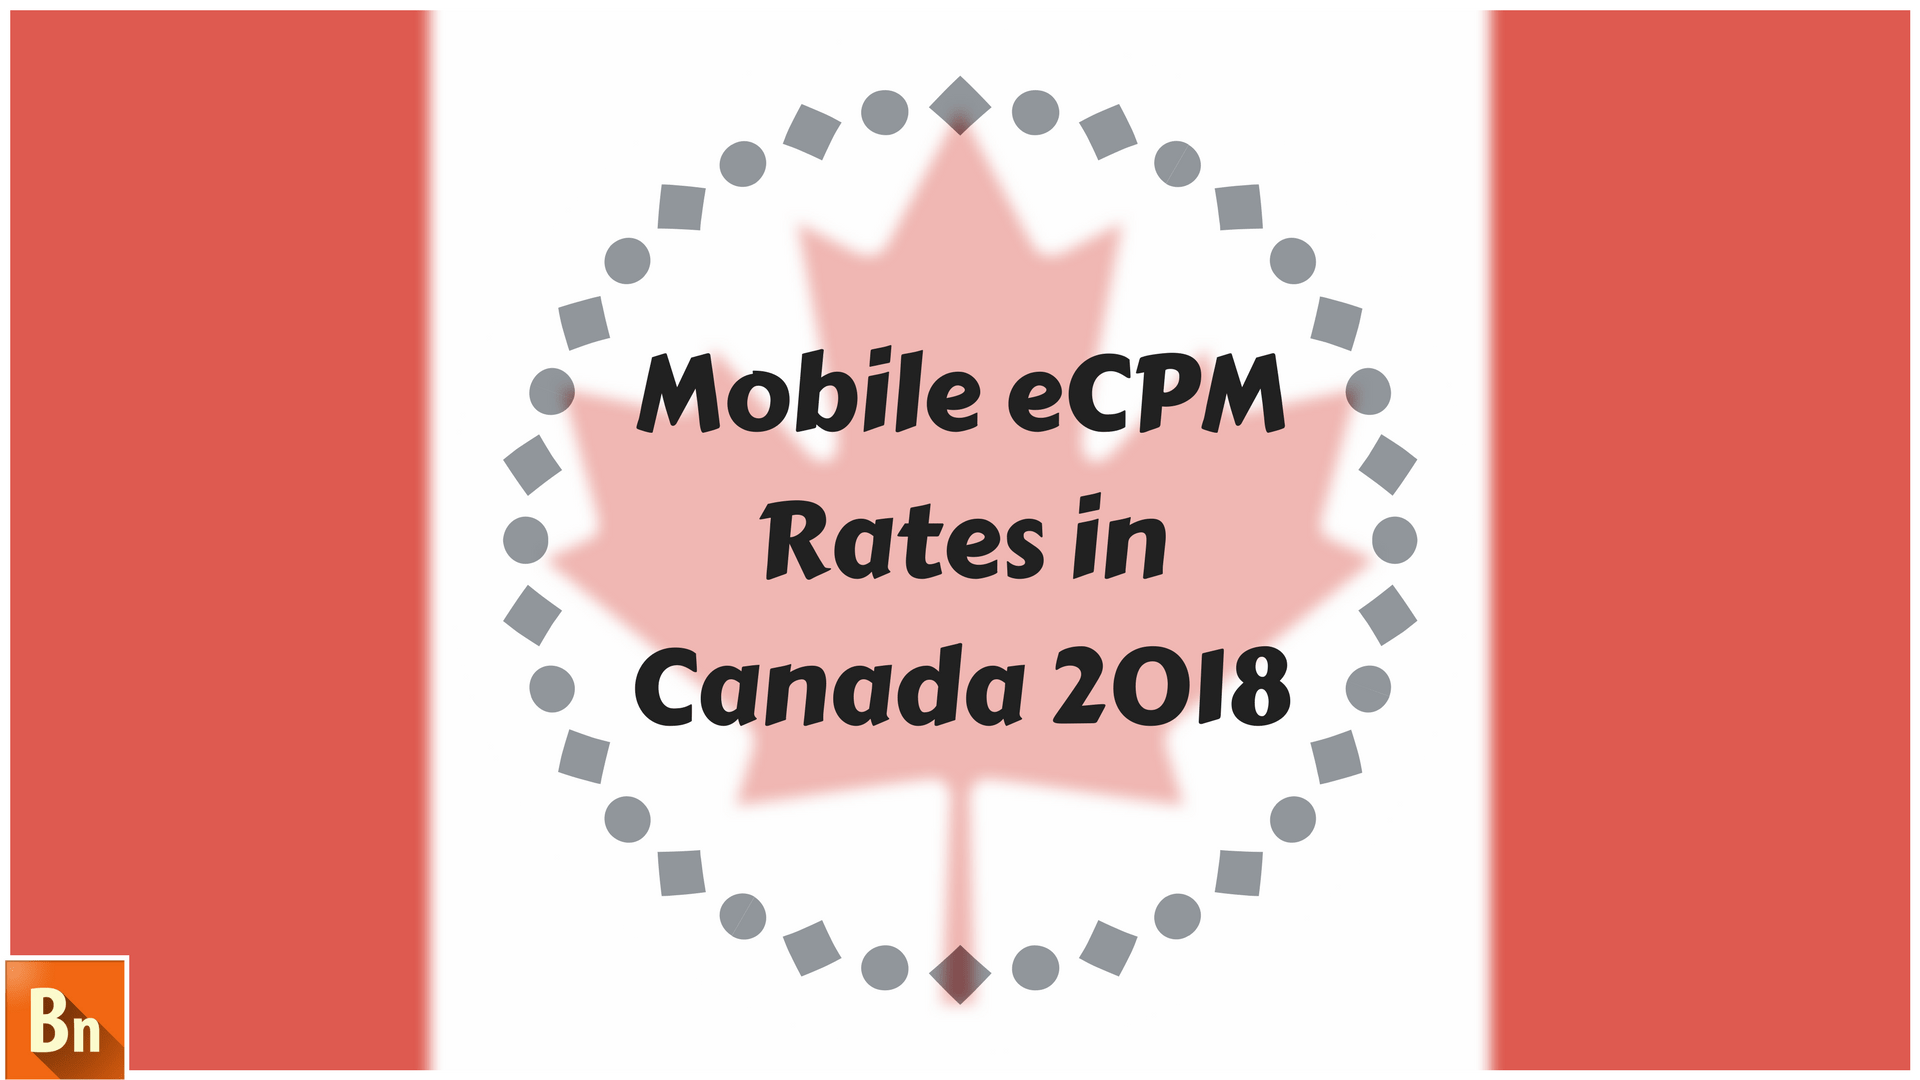 Mobile eCPM Rates in Canada 2019